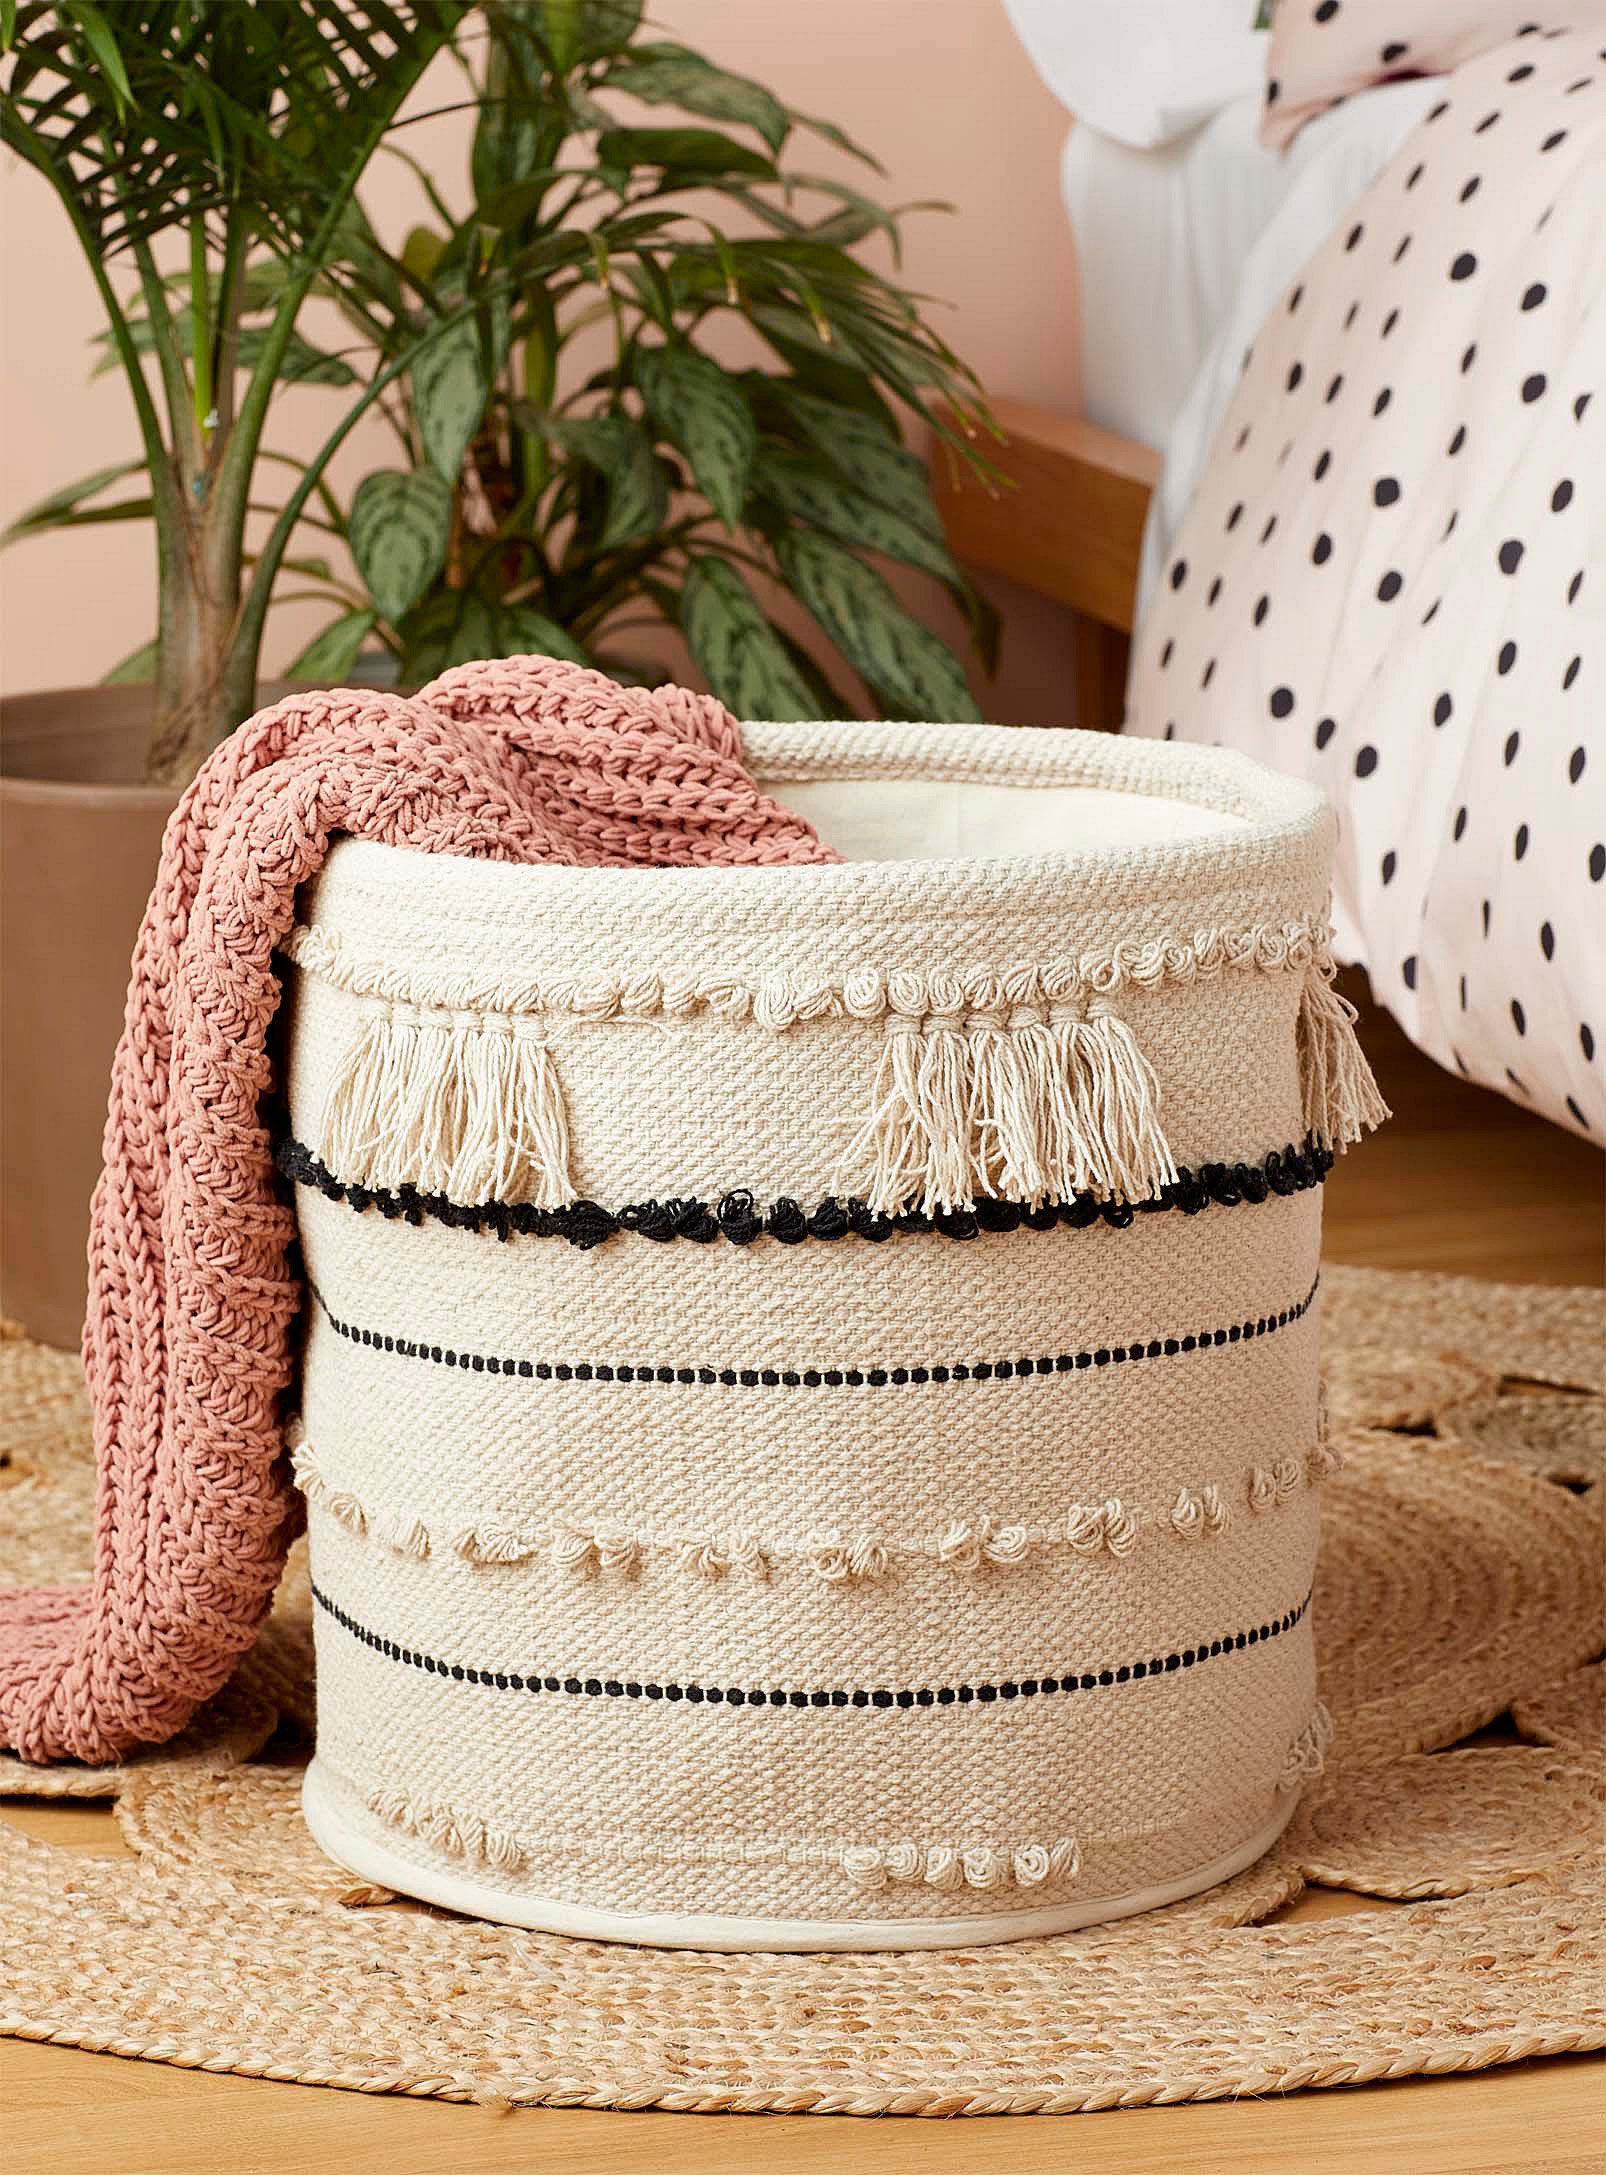 A woven basket with a blanket hanging off the edge